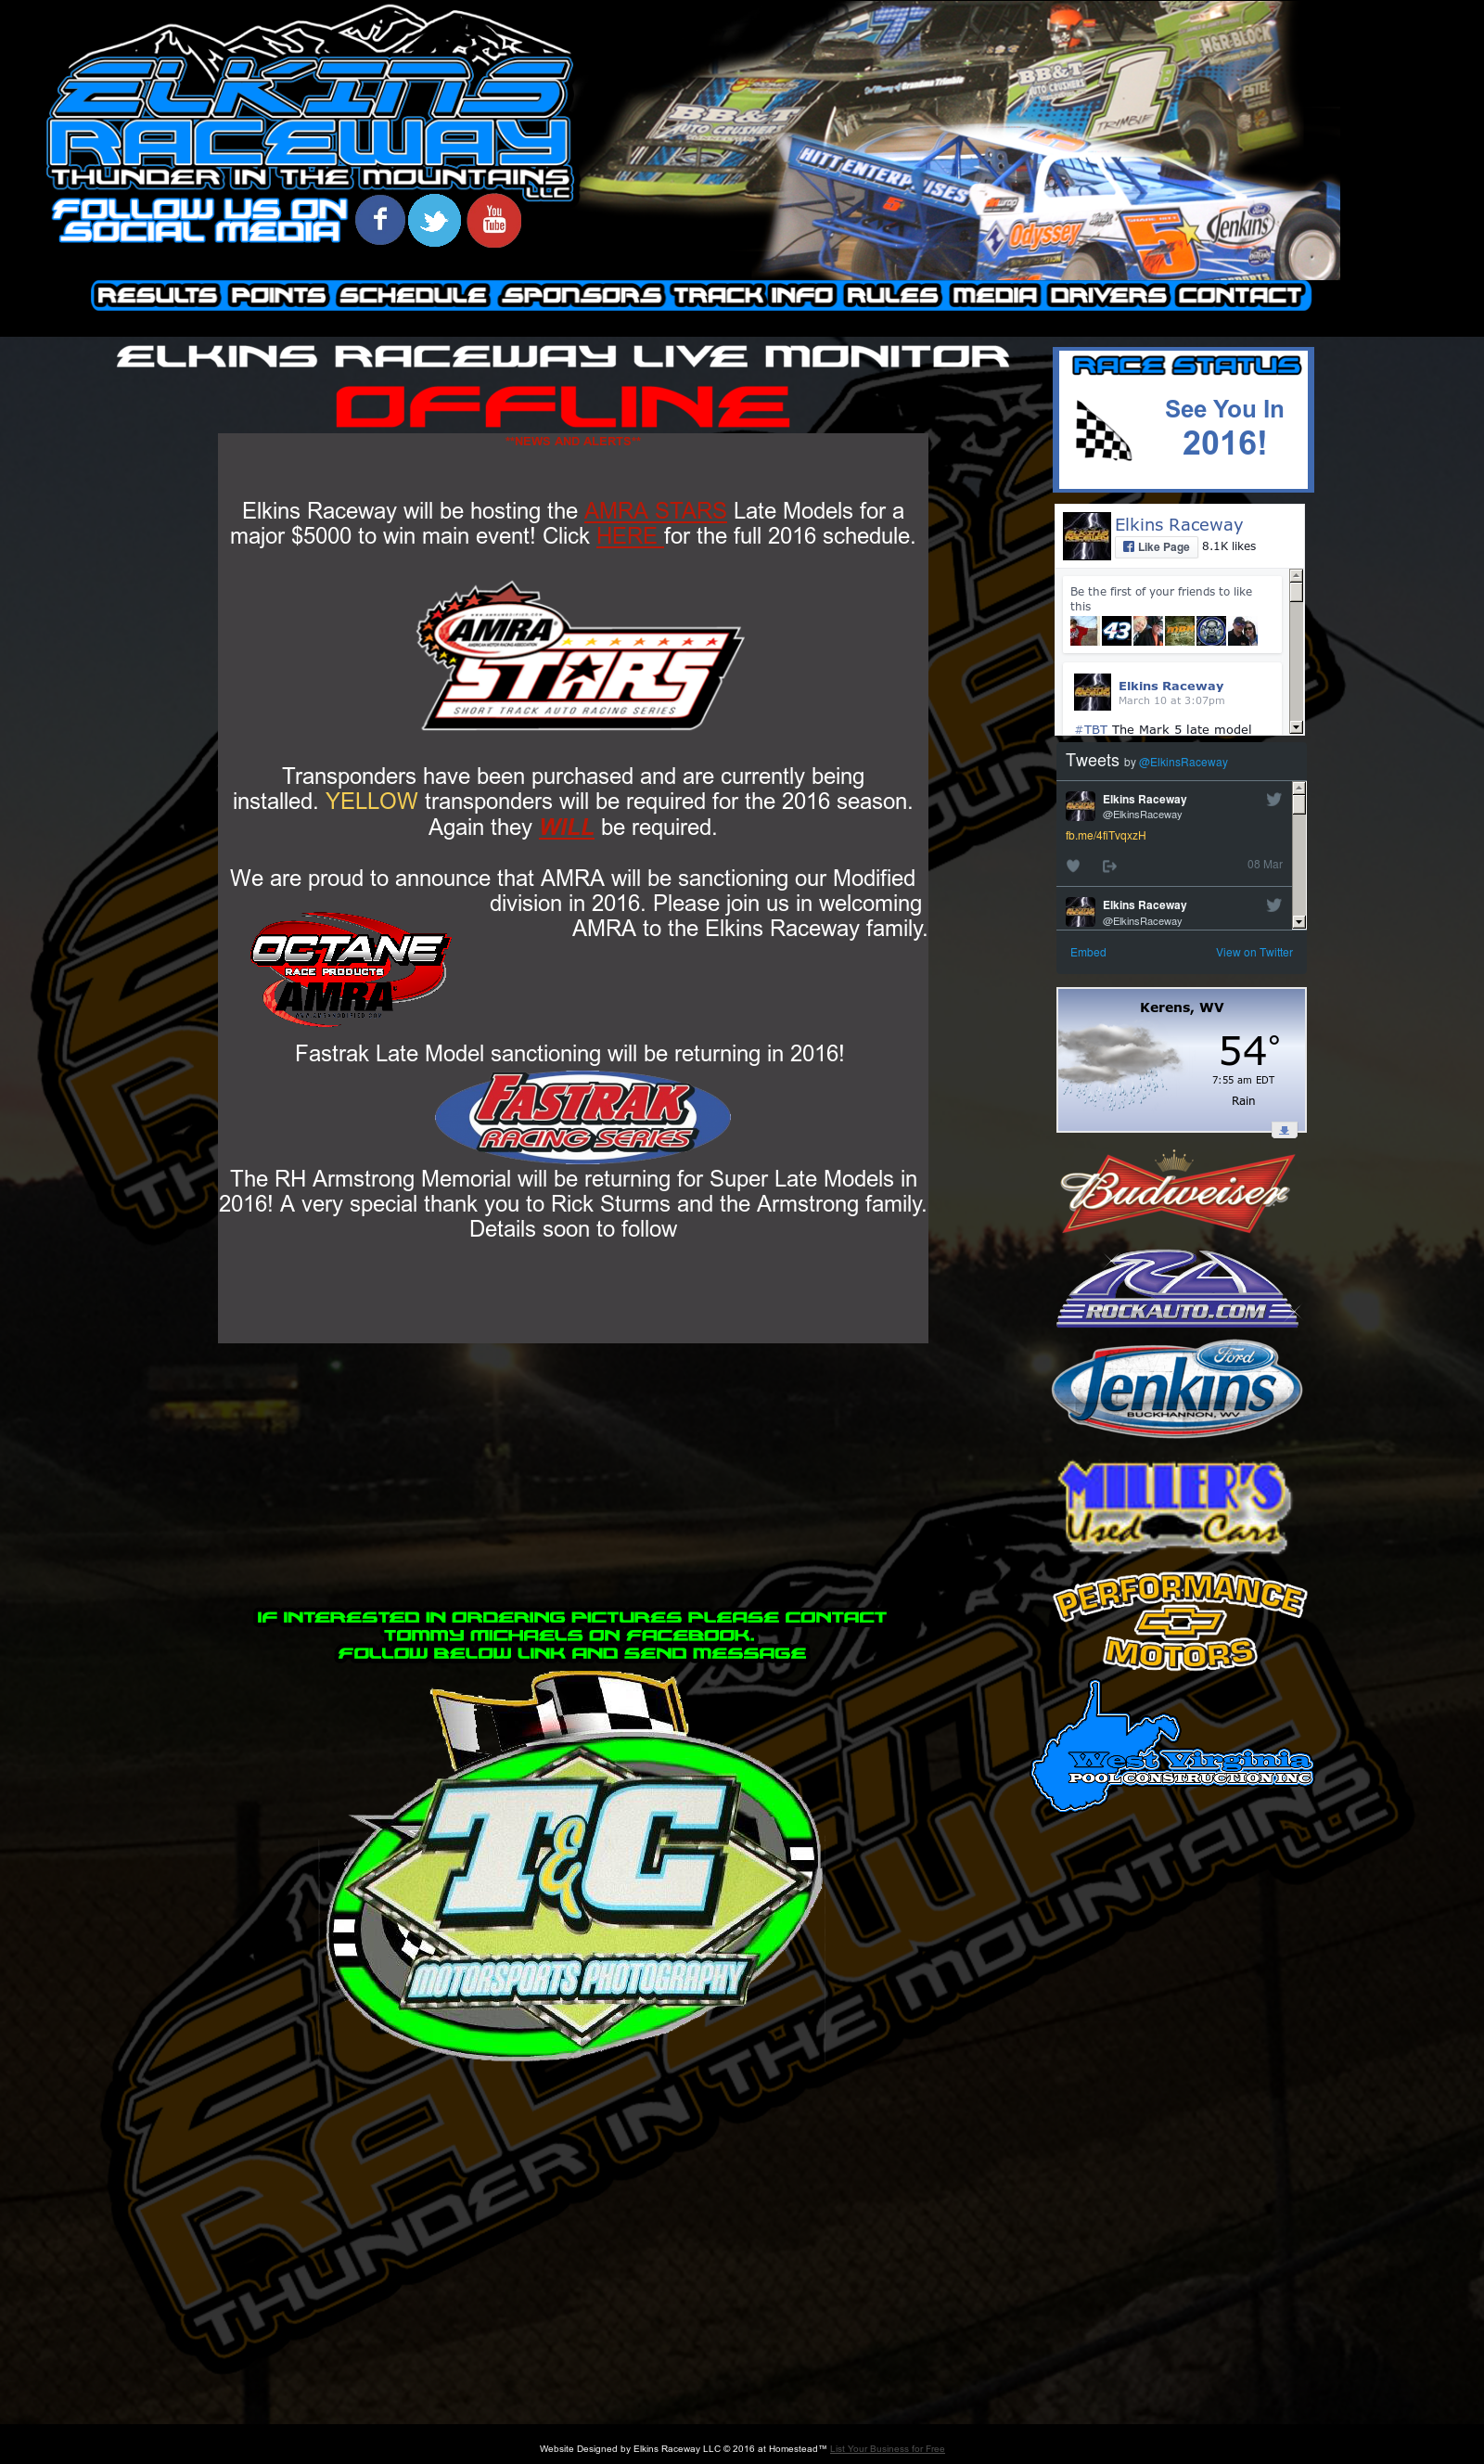 Elkins Raceway Competitors, Revenue and Employees - Owler